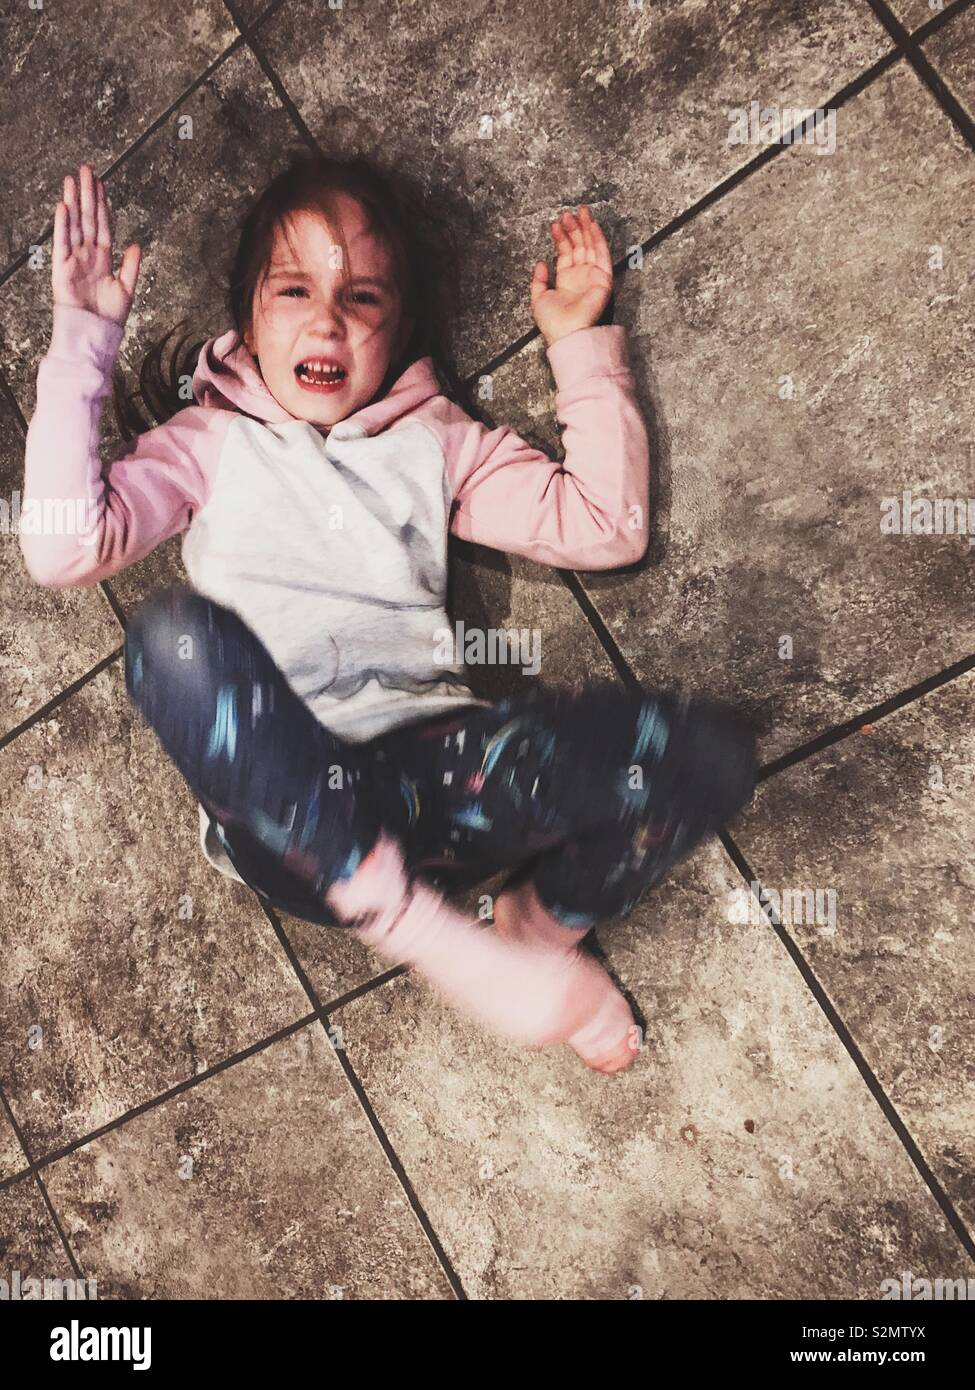 Young girl having a temper tantrum on the floor - Stock Image